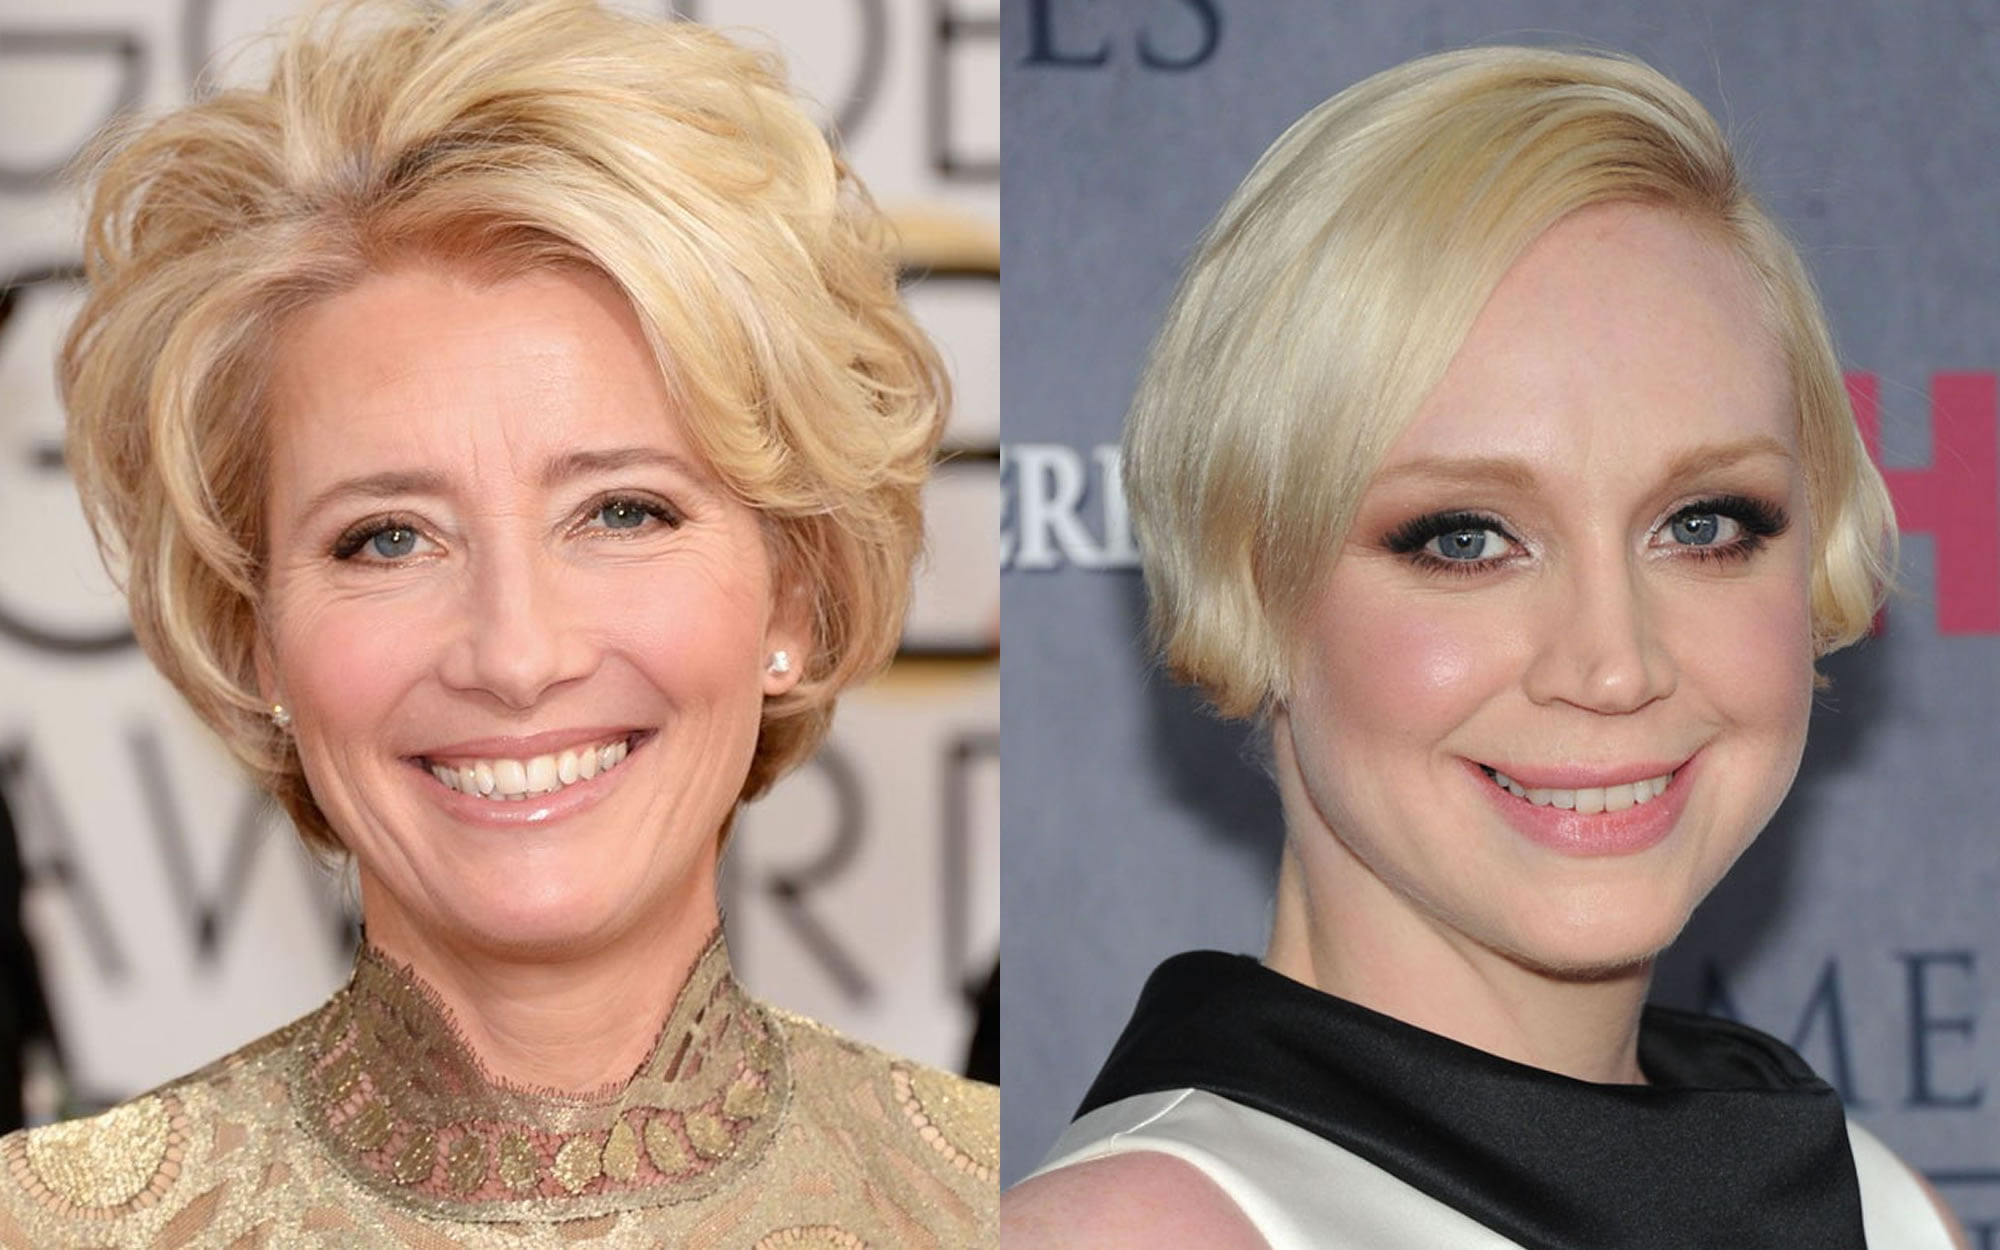 Hairstyles for Older Women Over 50